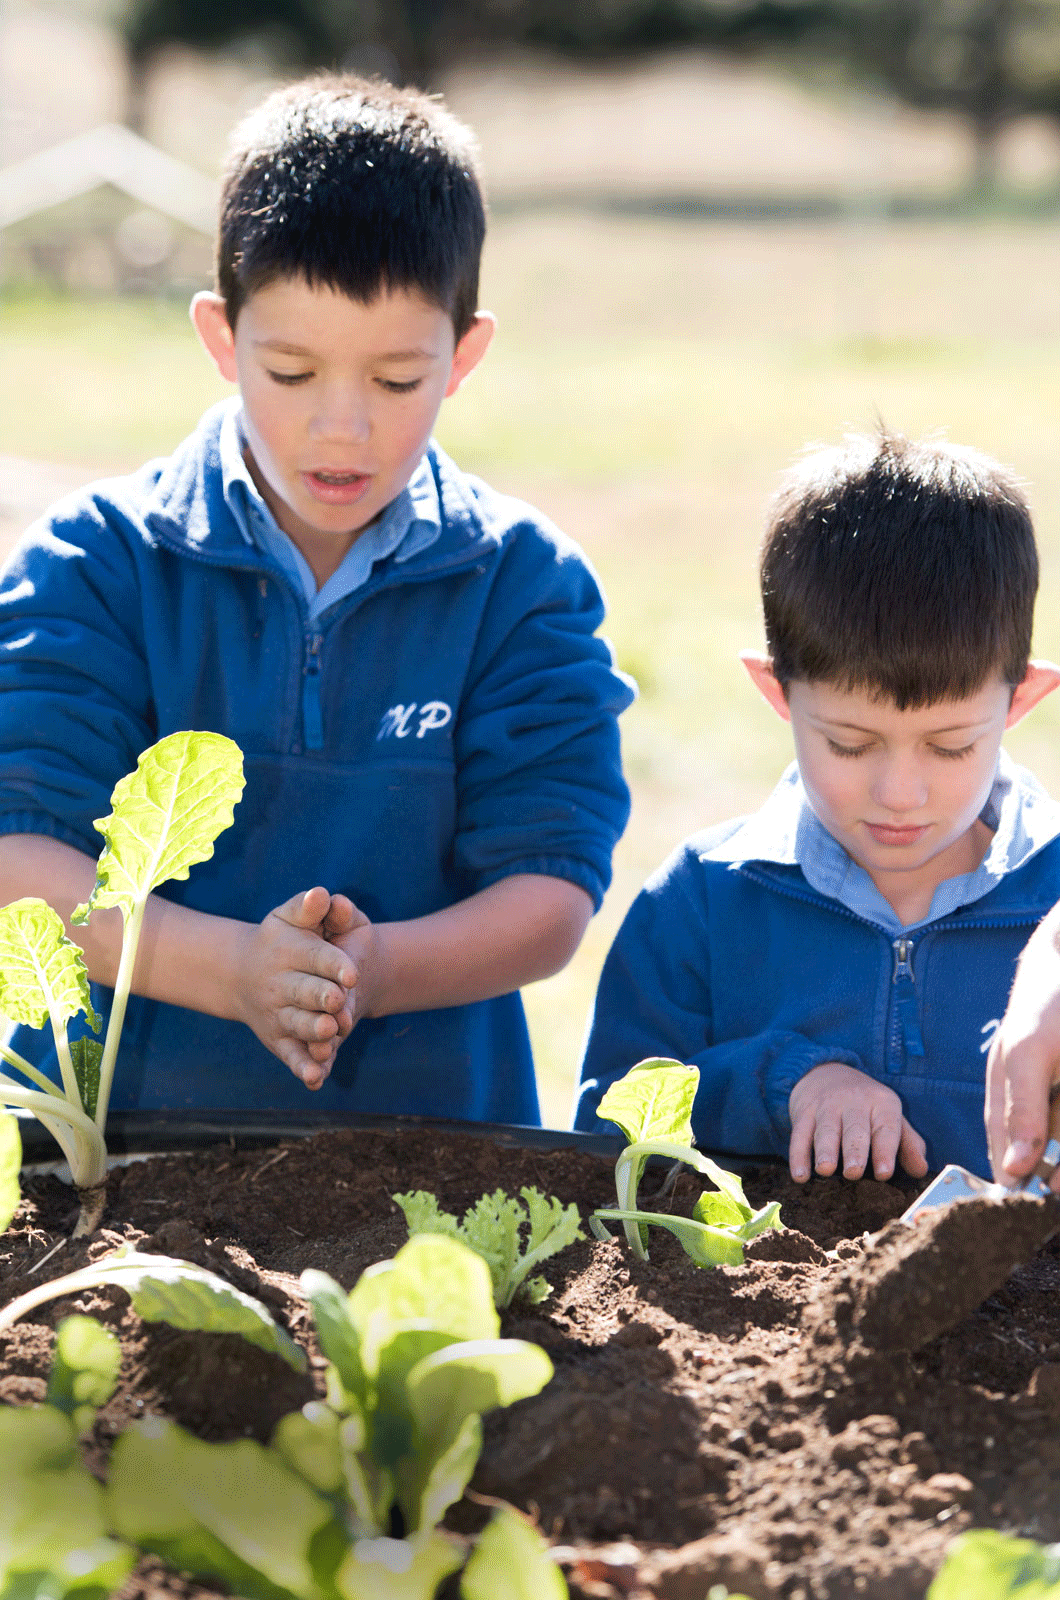 School children digging in garden